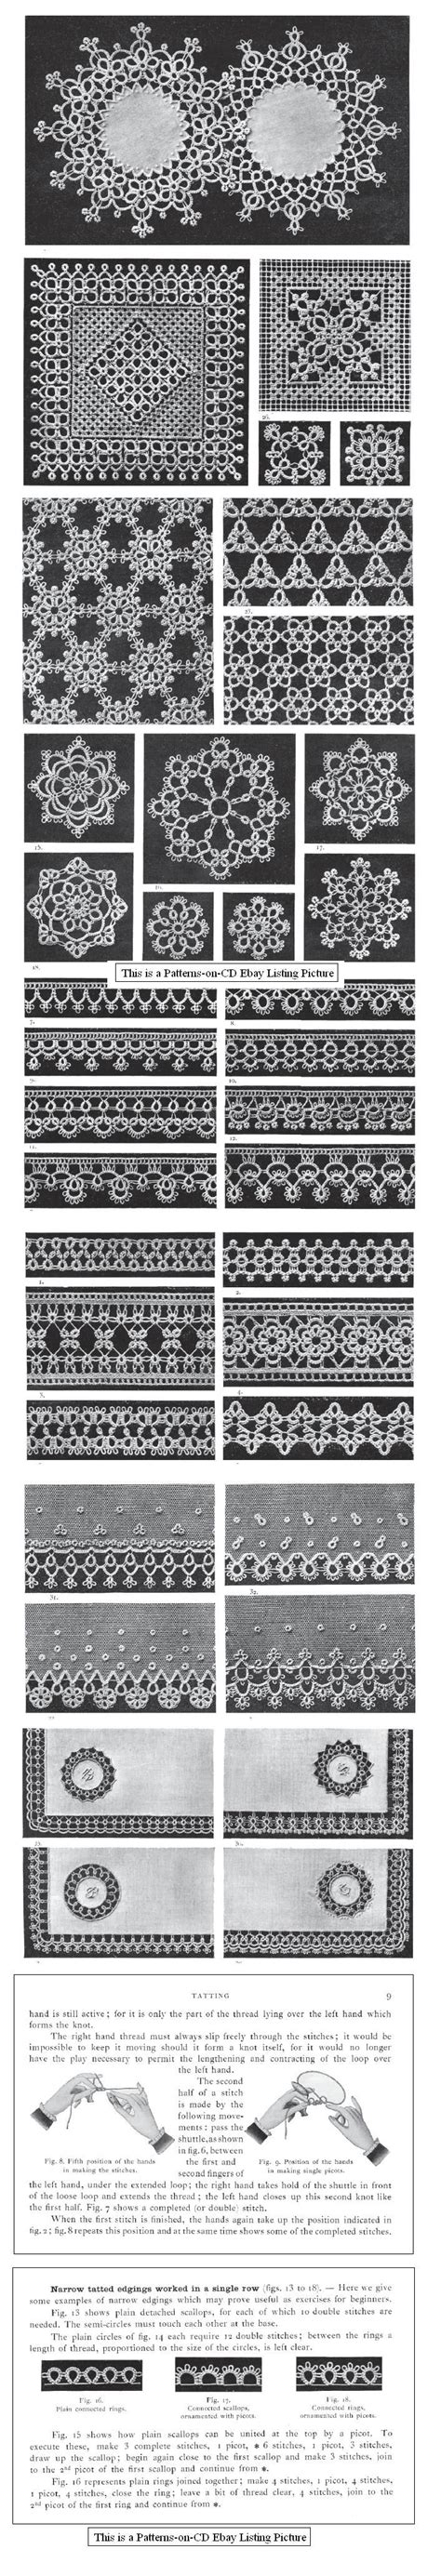 antique pattern library tatting 1017 best images about tatting patterns on pinterest